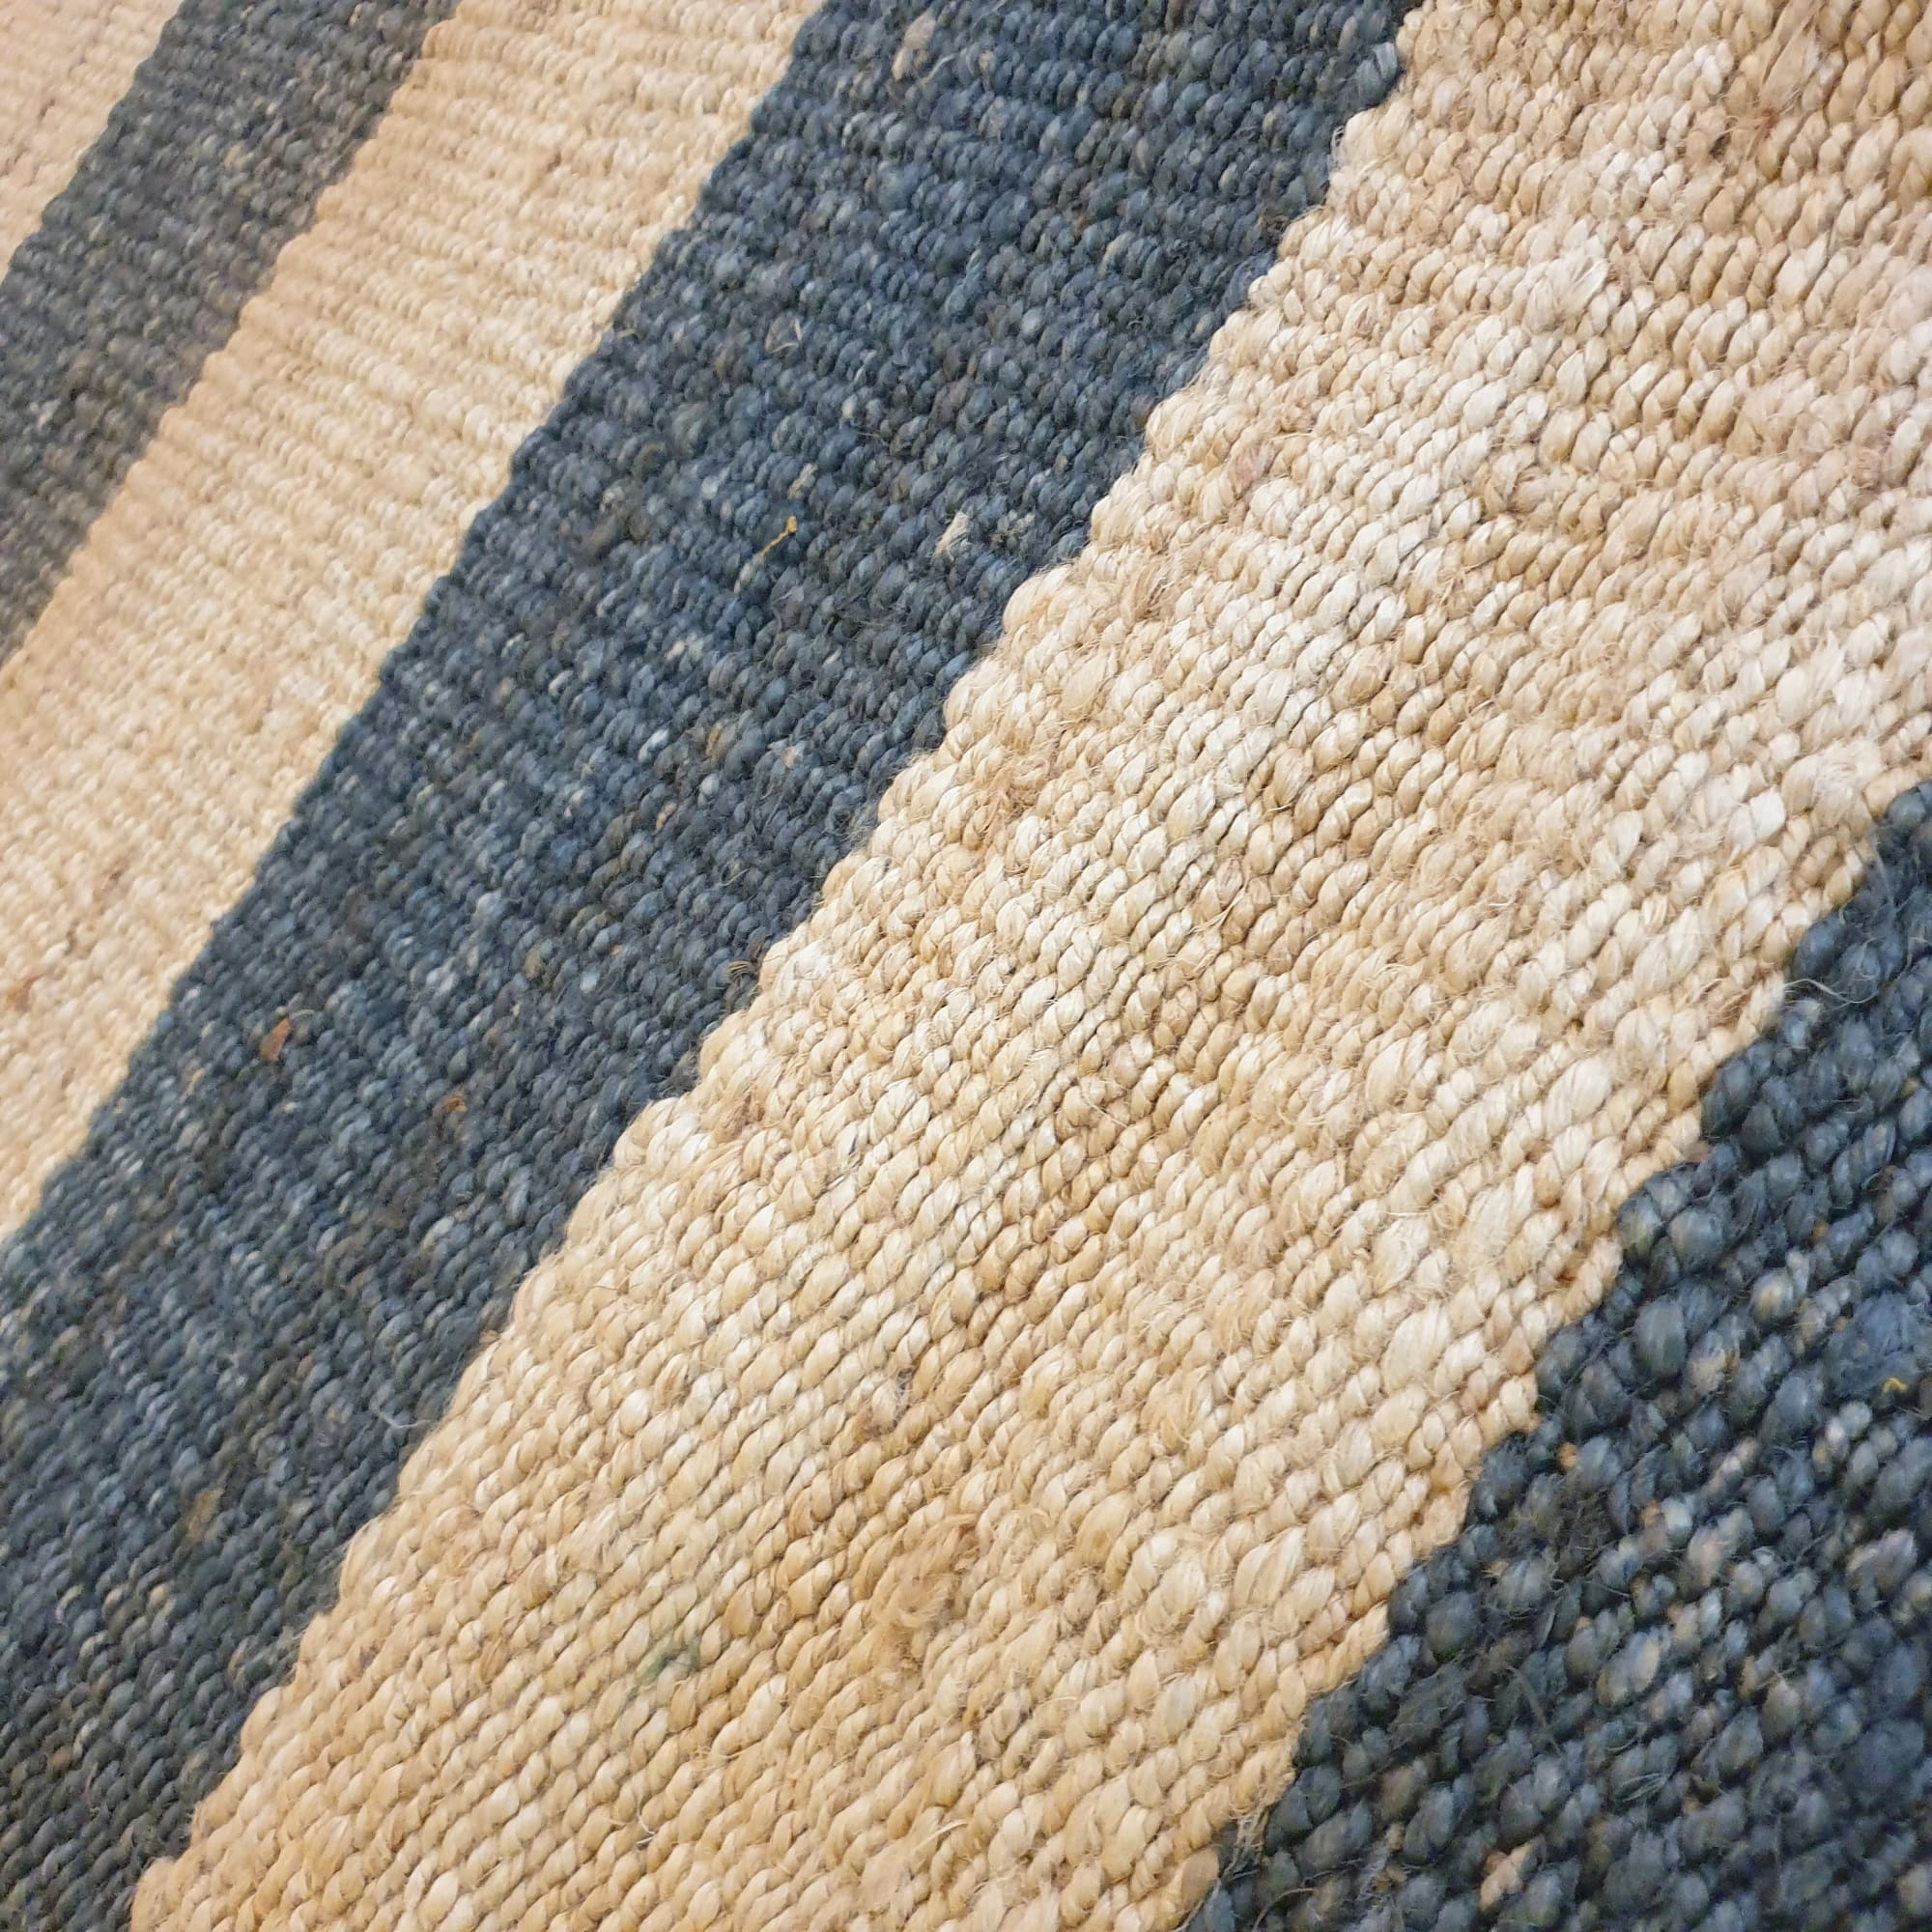 Striped Jute Rug - Natural and Black - Stunning Rugs at ...